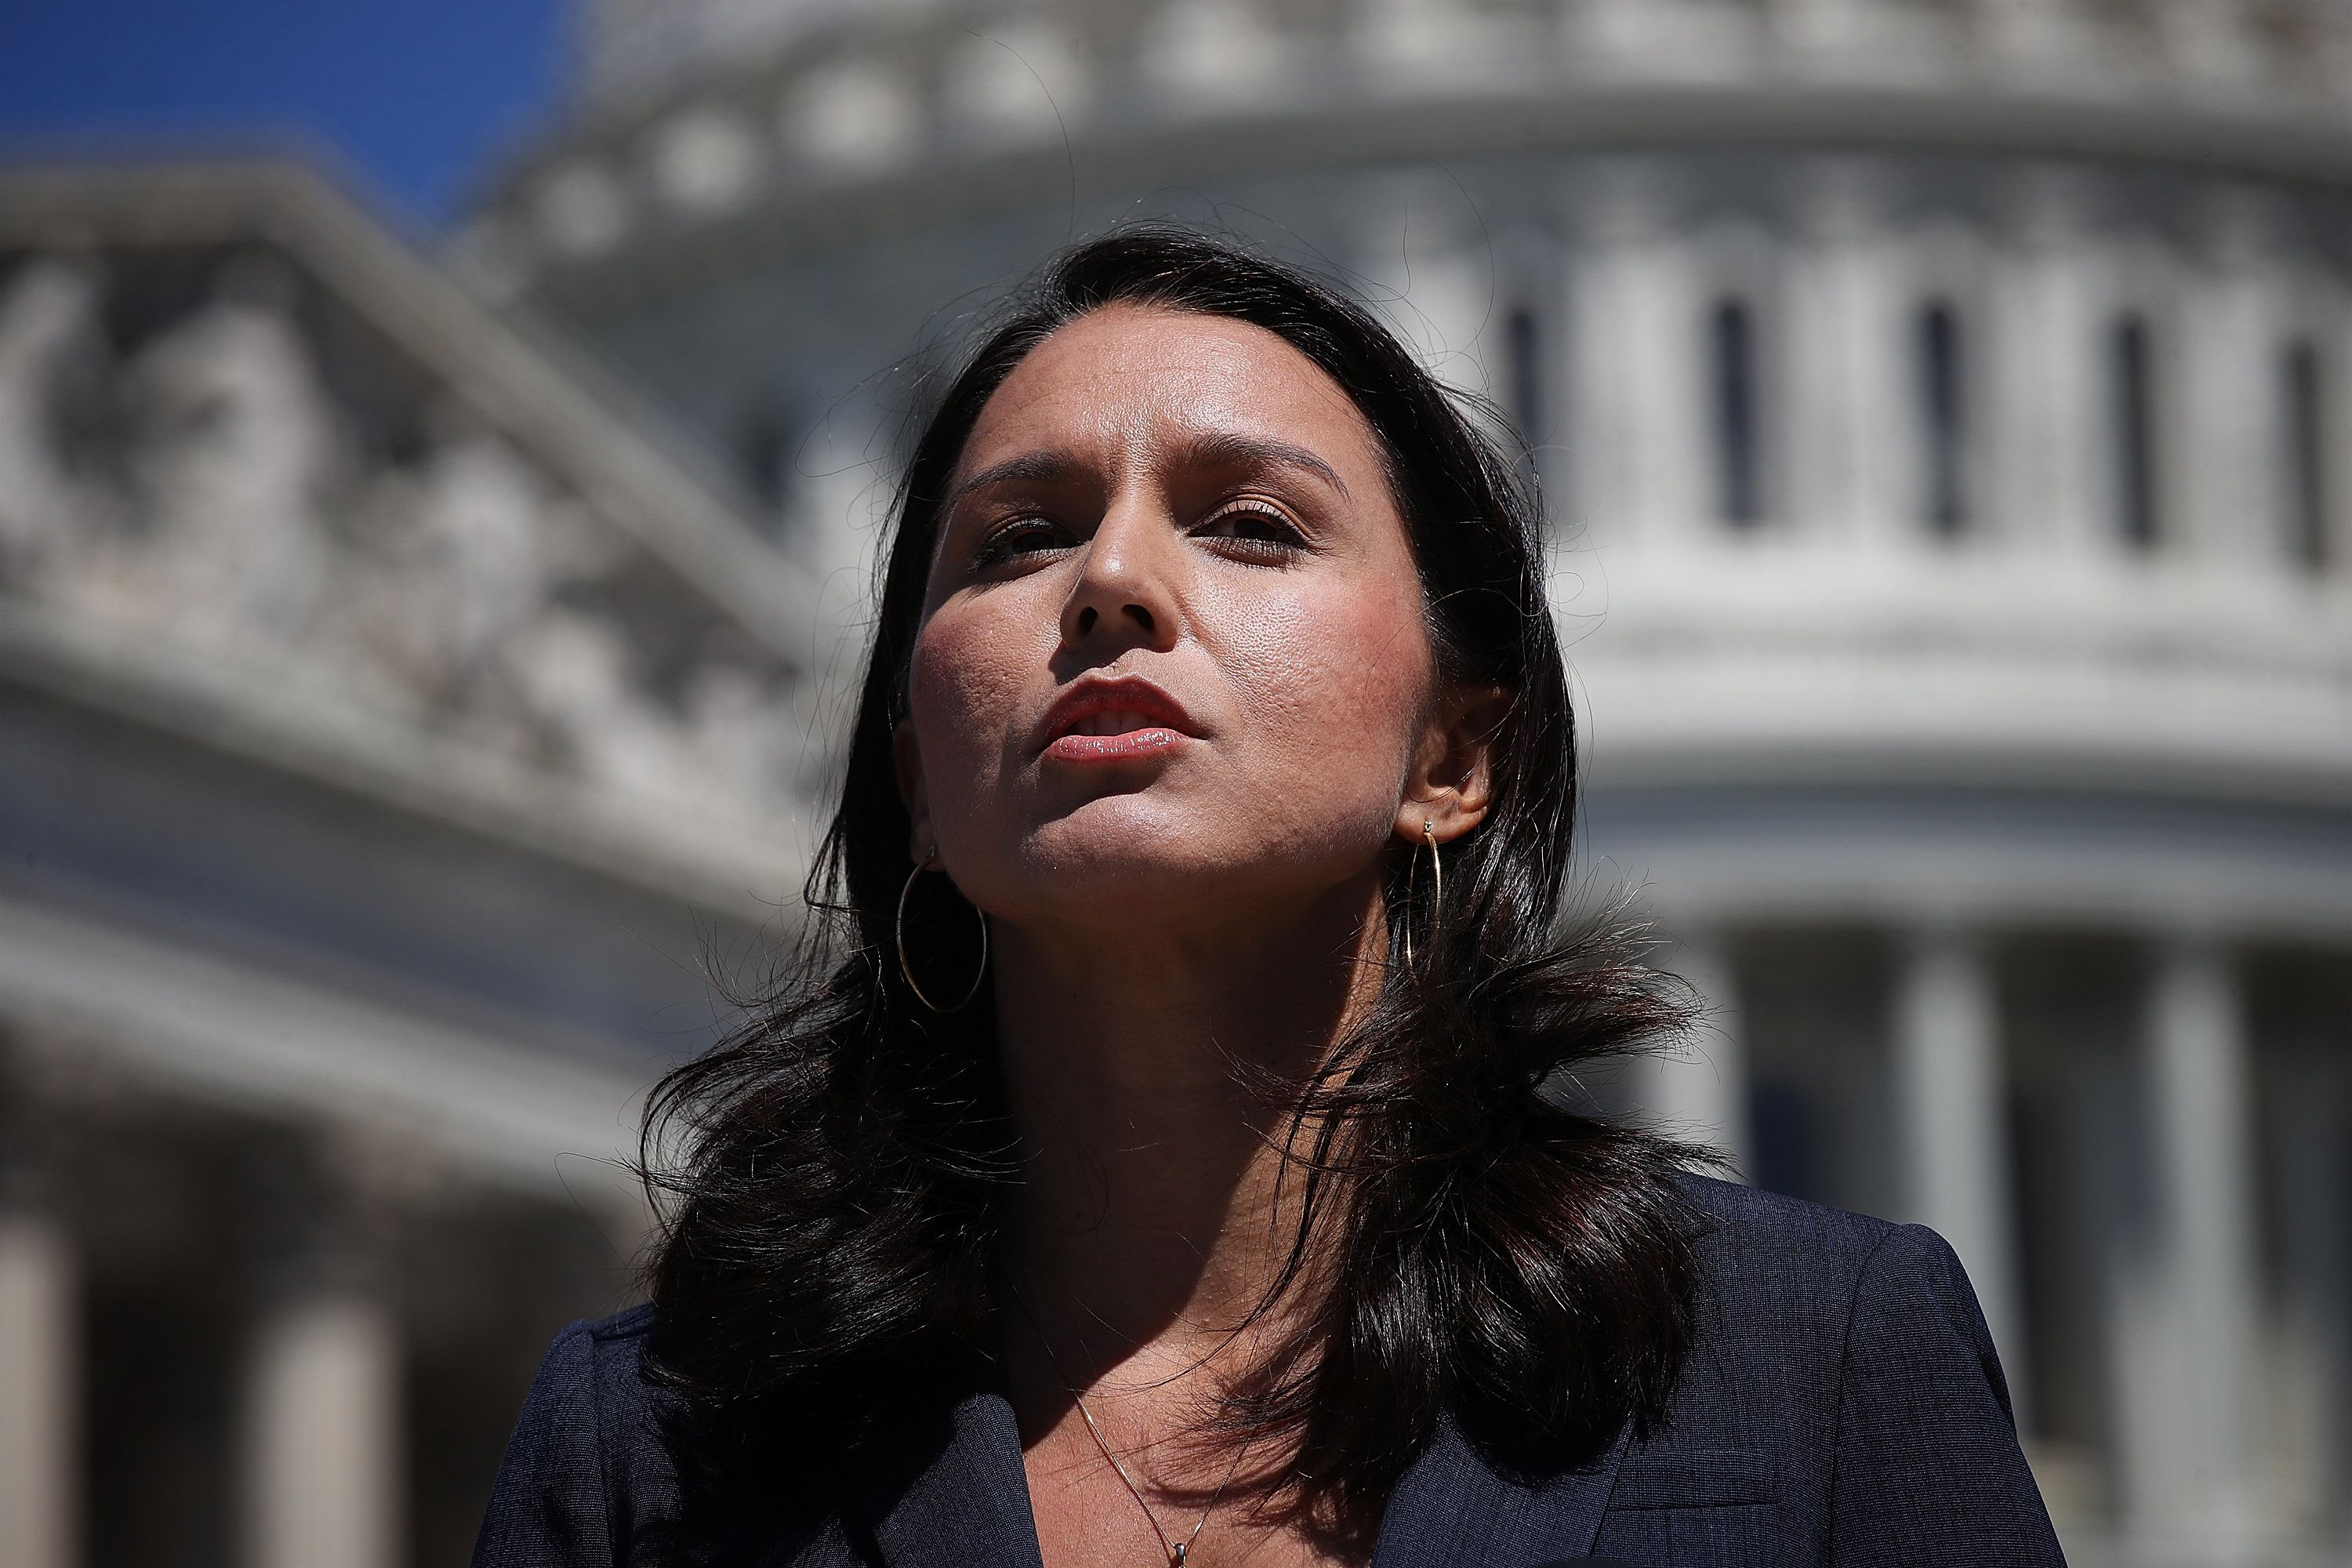 WASHINGTON, DC - JULY 18:  Rep. Tulsi Gabbard (D-HI) speaks at a press conference on House Resolution 922 outside the U.S. Capitol July 18, 2018 in Washington, DC. Gabbard and Rep. Walter Jones (R-NC) spoke on reclaiming 'Congress's constitutional right to declare war' and efforts to define presidential wars not declared by Congress as impeachable 'high crimes and misdemeanors.'  (Photo by Win McNamee/Getty Images)